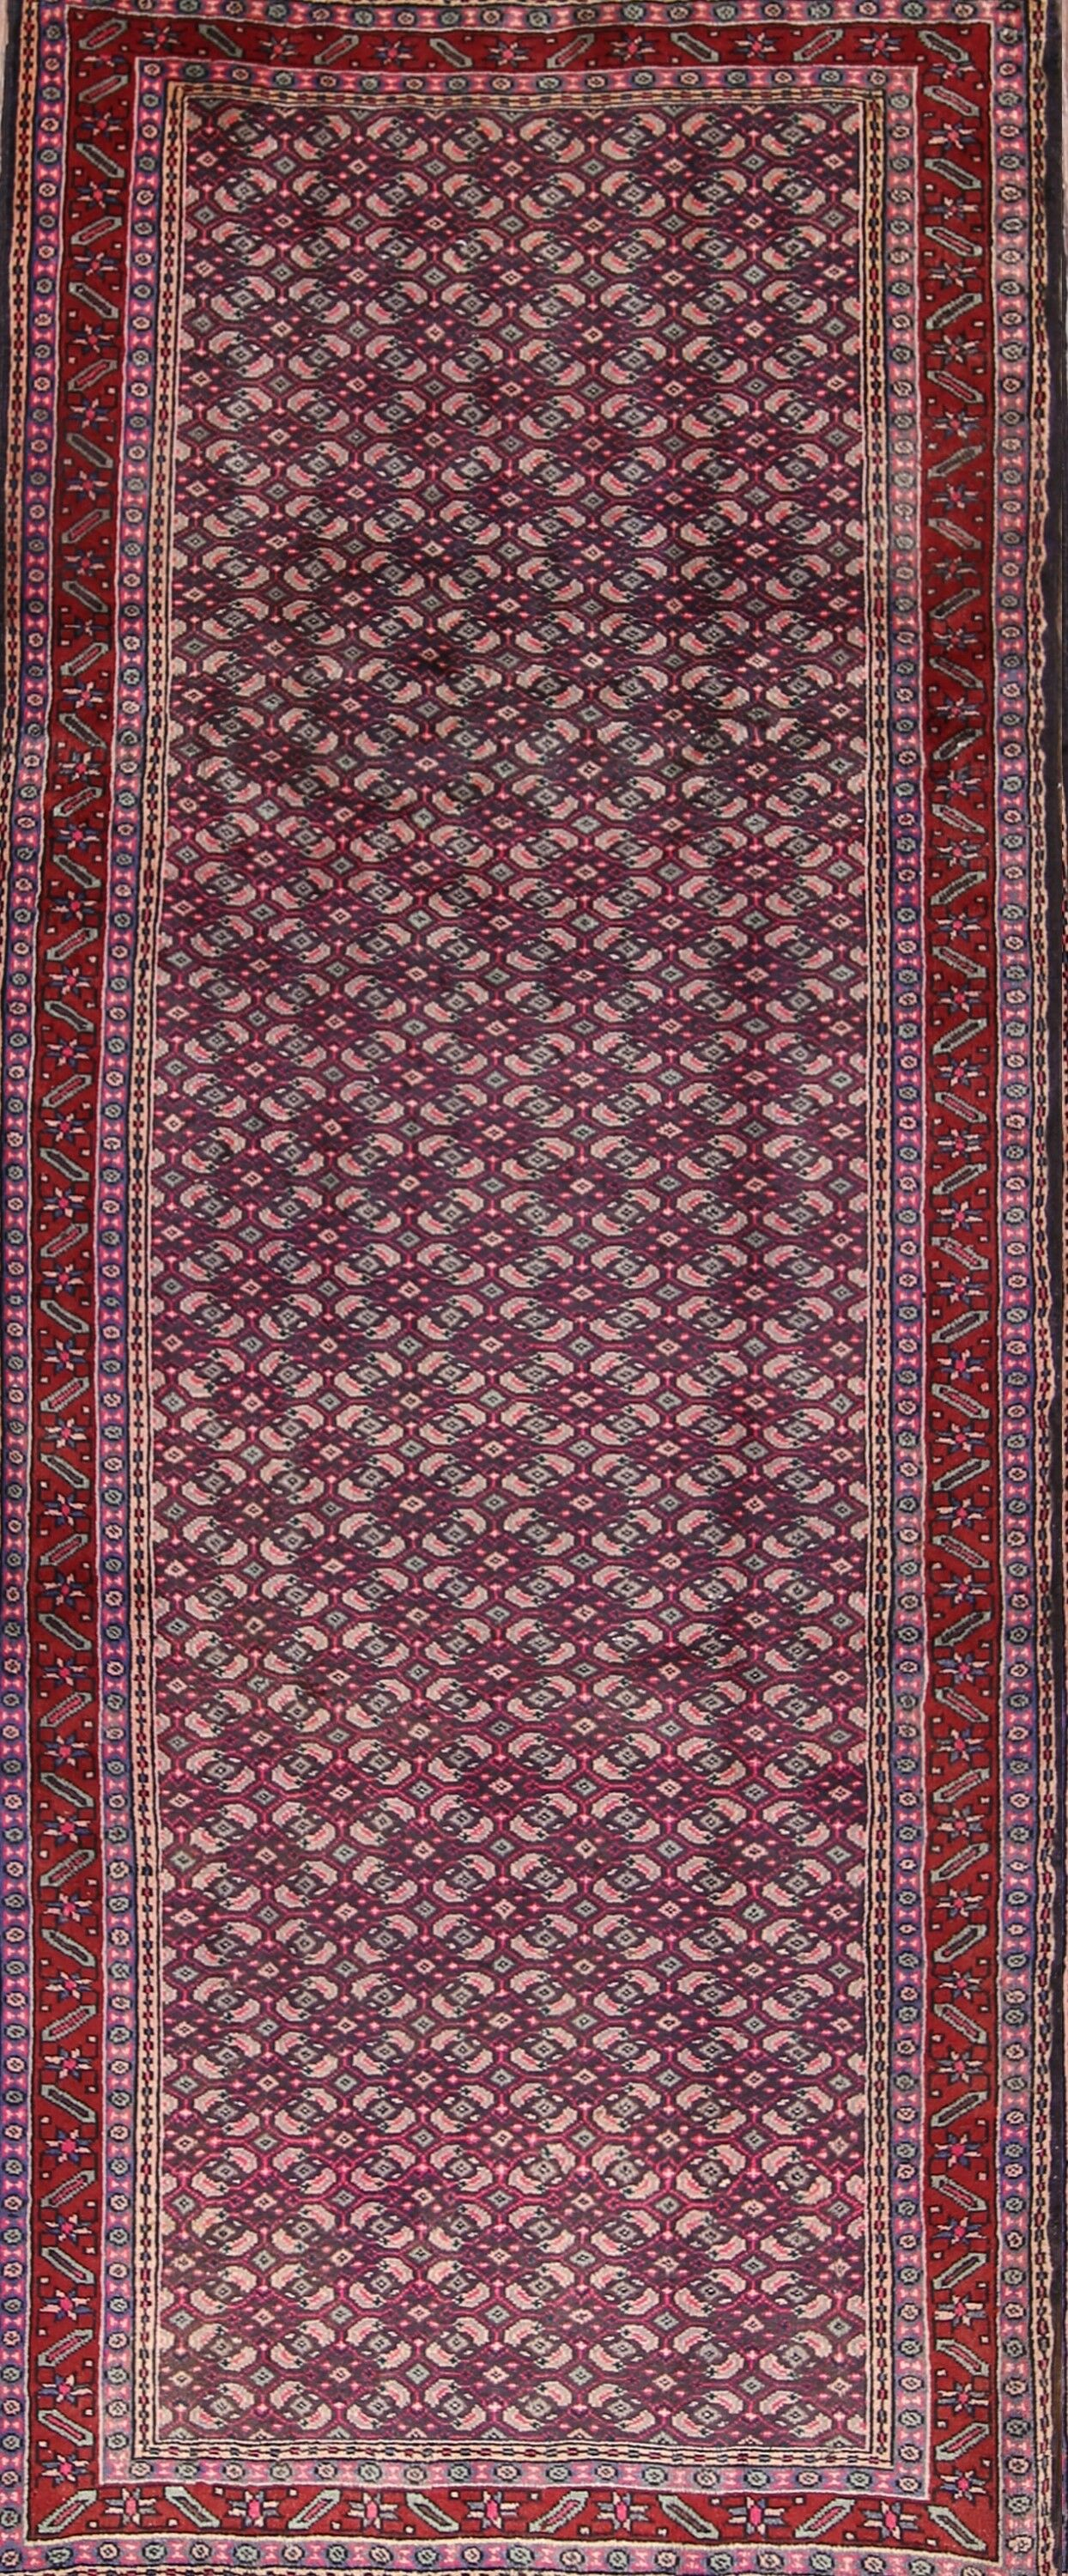 One-of-a-Kind Dryer Ardebil Persian Hand-Knotted 4'1